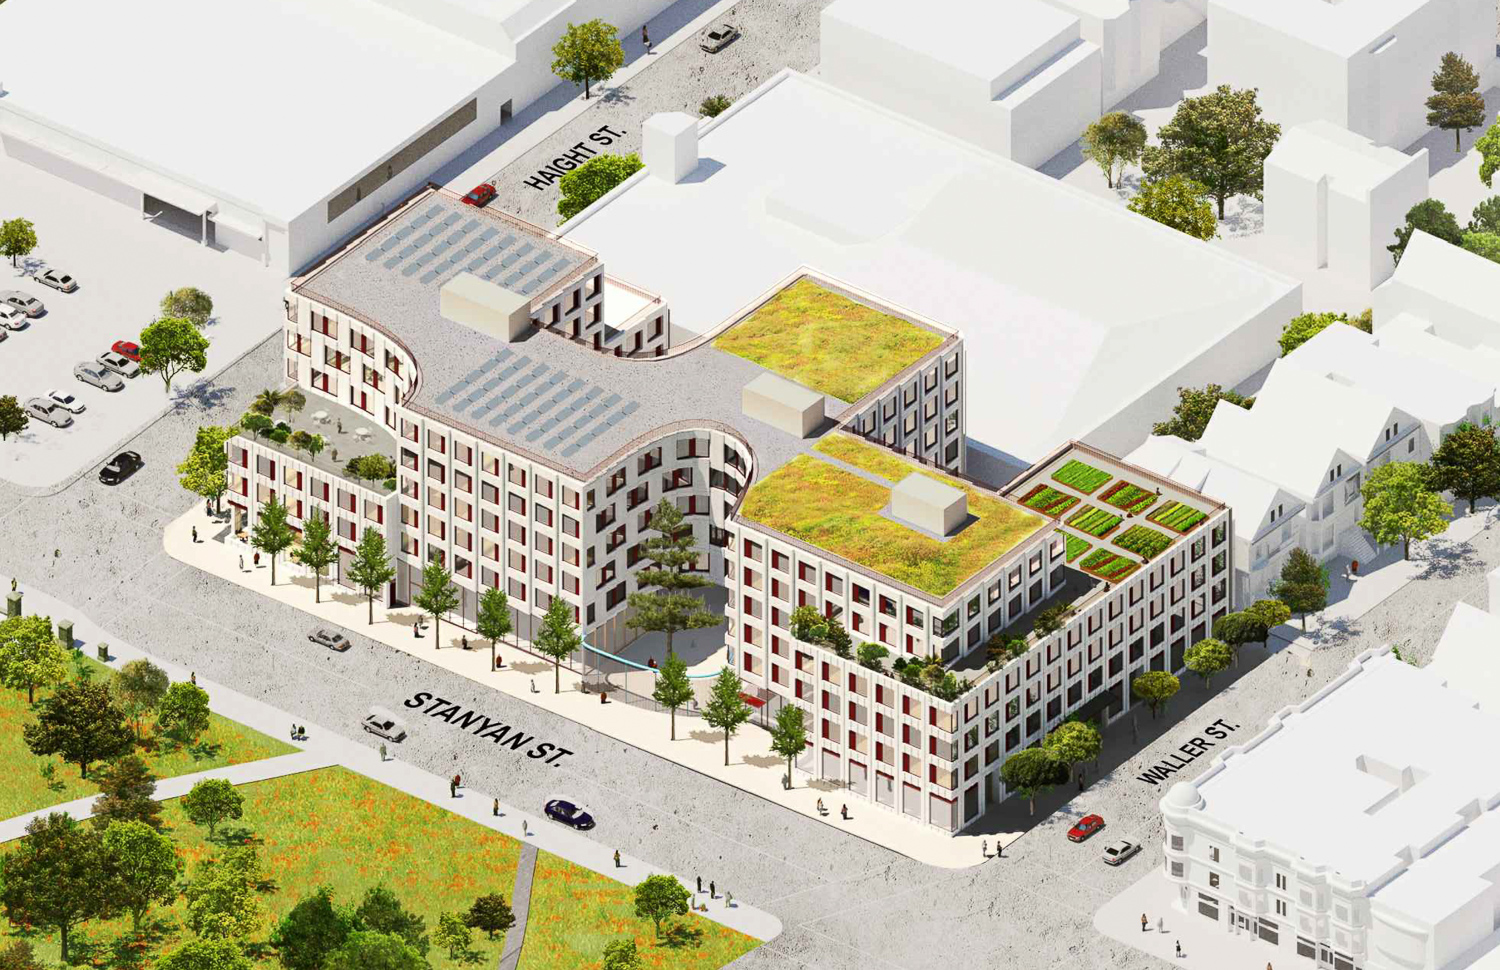 730 Stanyan Street aerial view, design by OMA